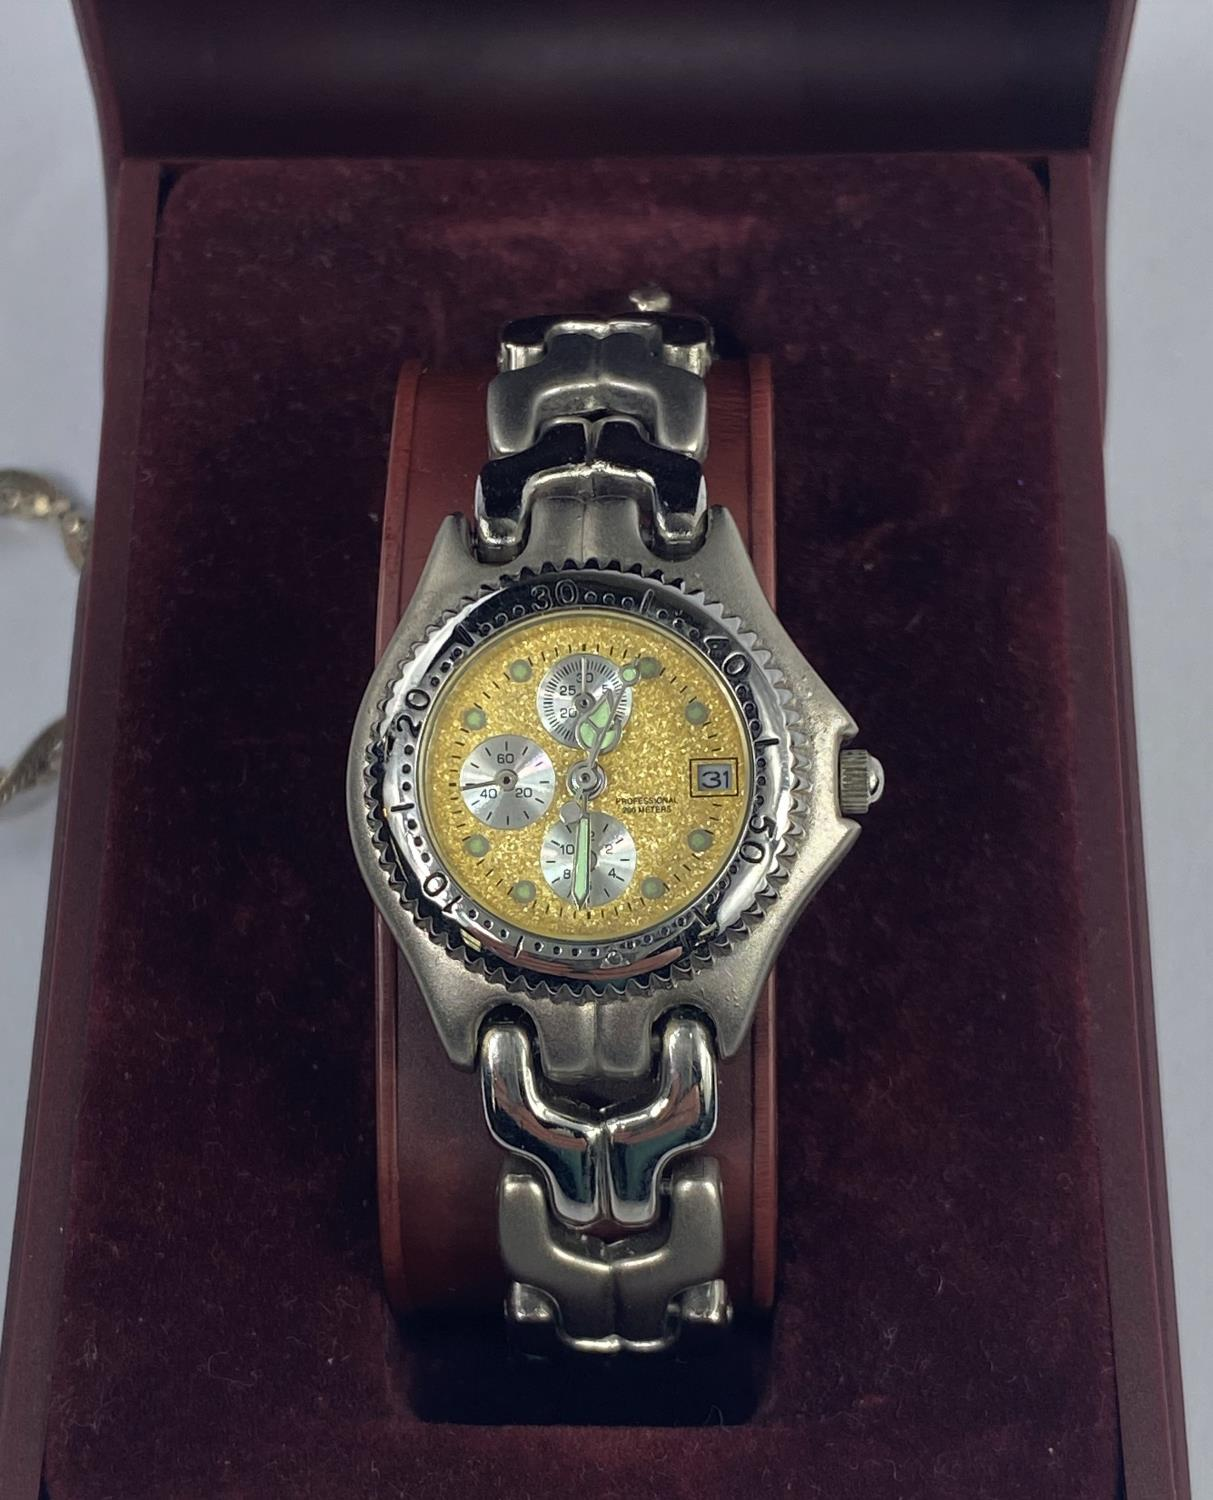 A lady's stainless steel wristwatch with a gilt face & 3 secondary dials; a smoky quarts pendant - Image 2 of 3